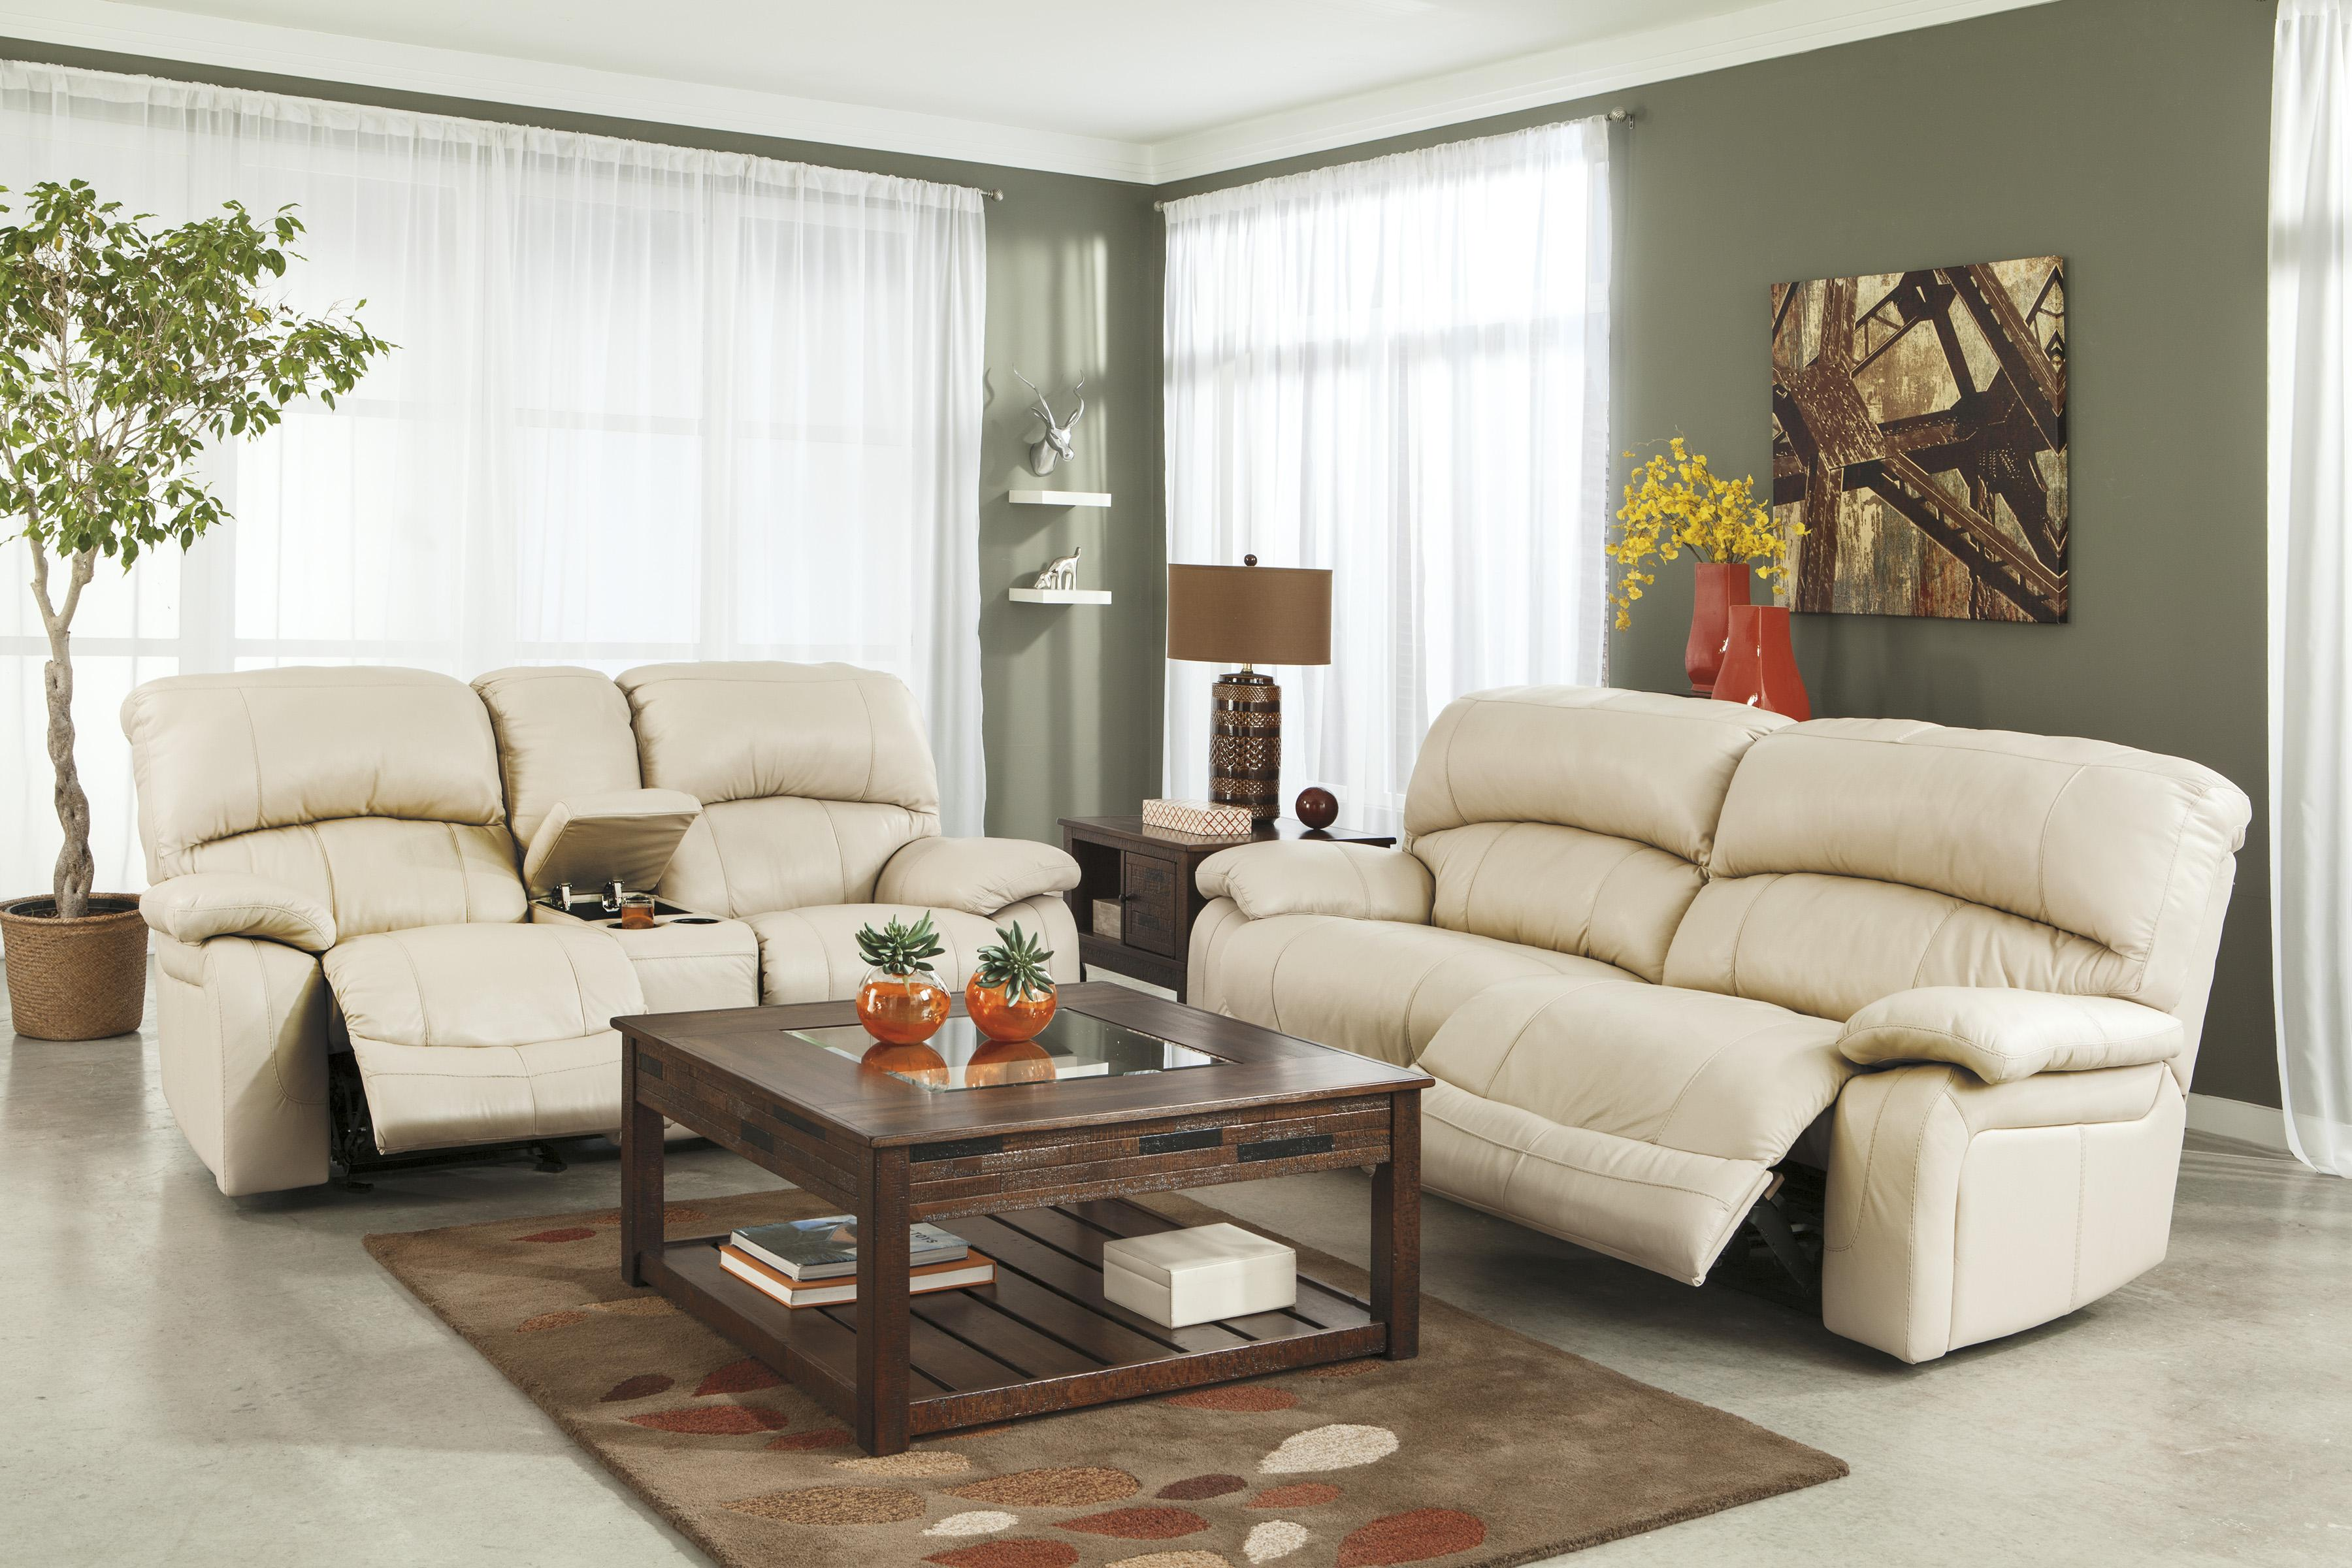 sleeper ashley the la loveseat wilmington new beauty furniture keep of by sofa and full walnut sofas room living size sectional with sets recliners sale